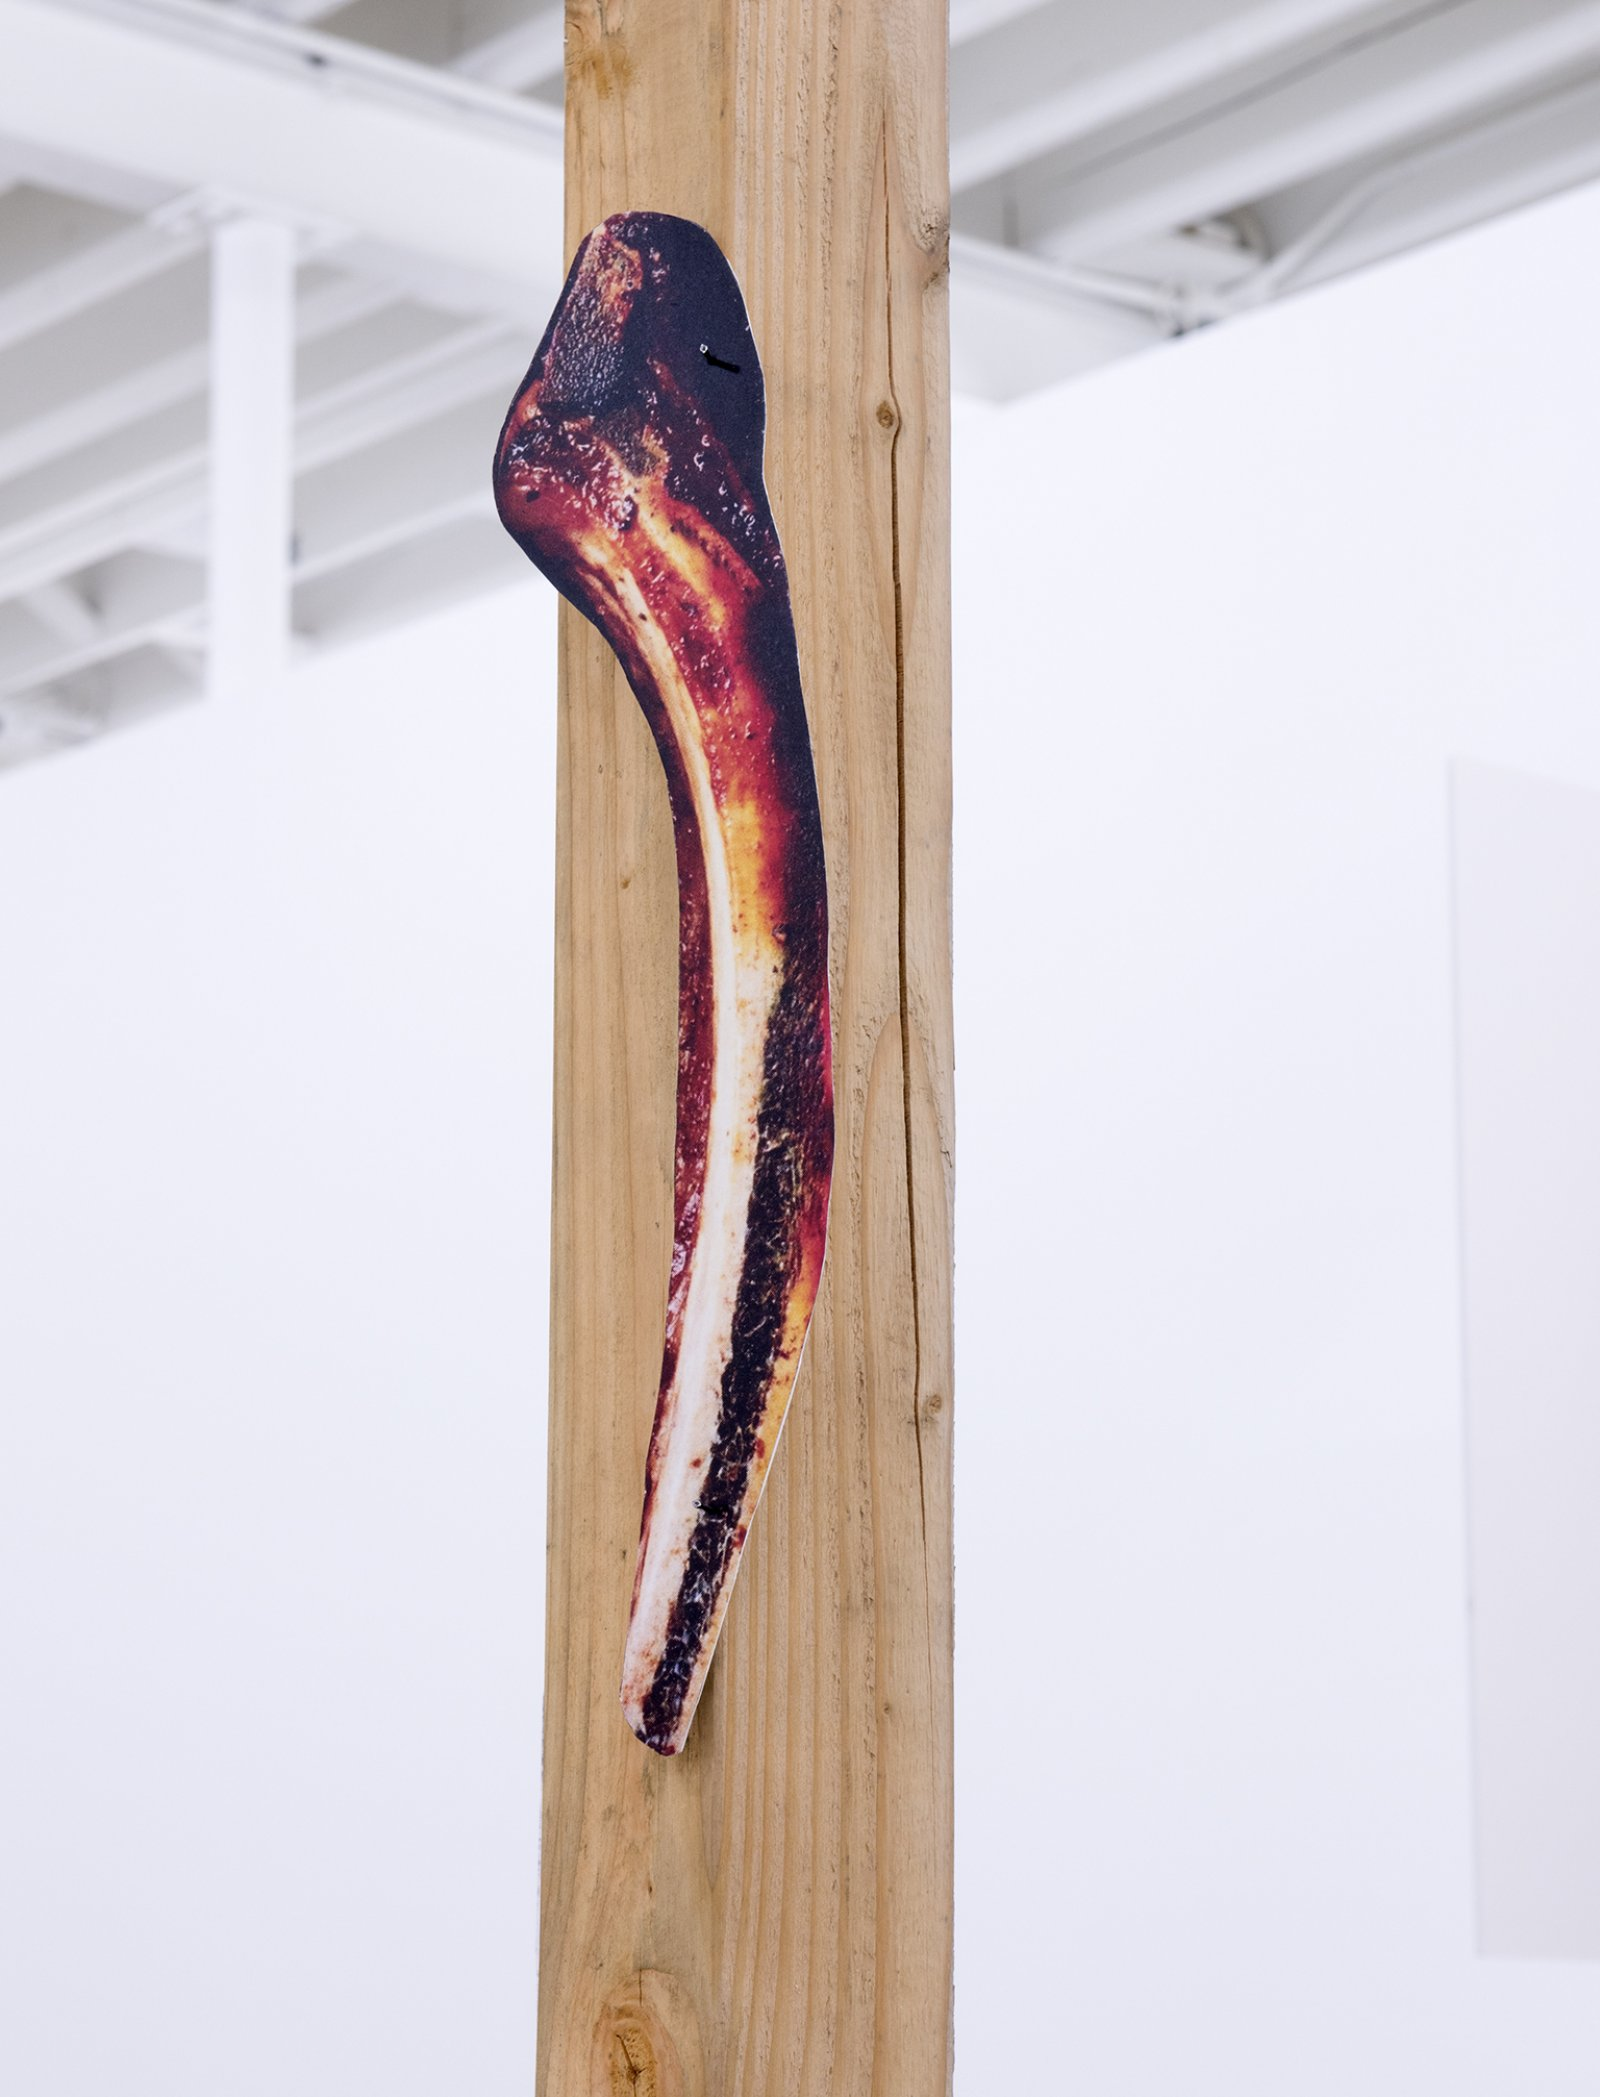 Geoffrey Farmer, The other ate one man, one man was set adrift, one man turned into a snake, one man washed ashore and became a statue and the others eyes were stolen by the owl. (detail), 2014, douglas fir pole, 6 photographs mounted on foamcore, 200 x 4 x 4 in. (508 x 9 x 9 cm)